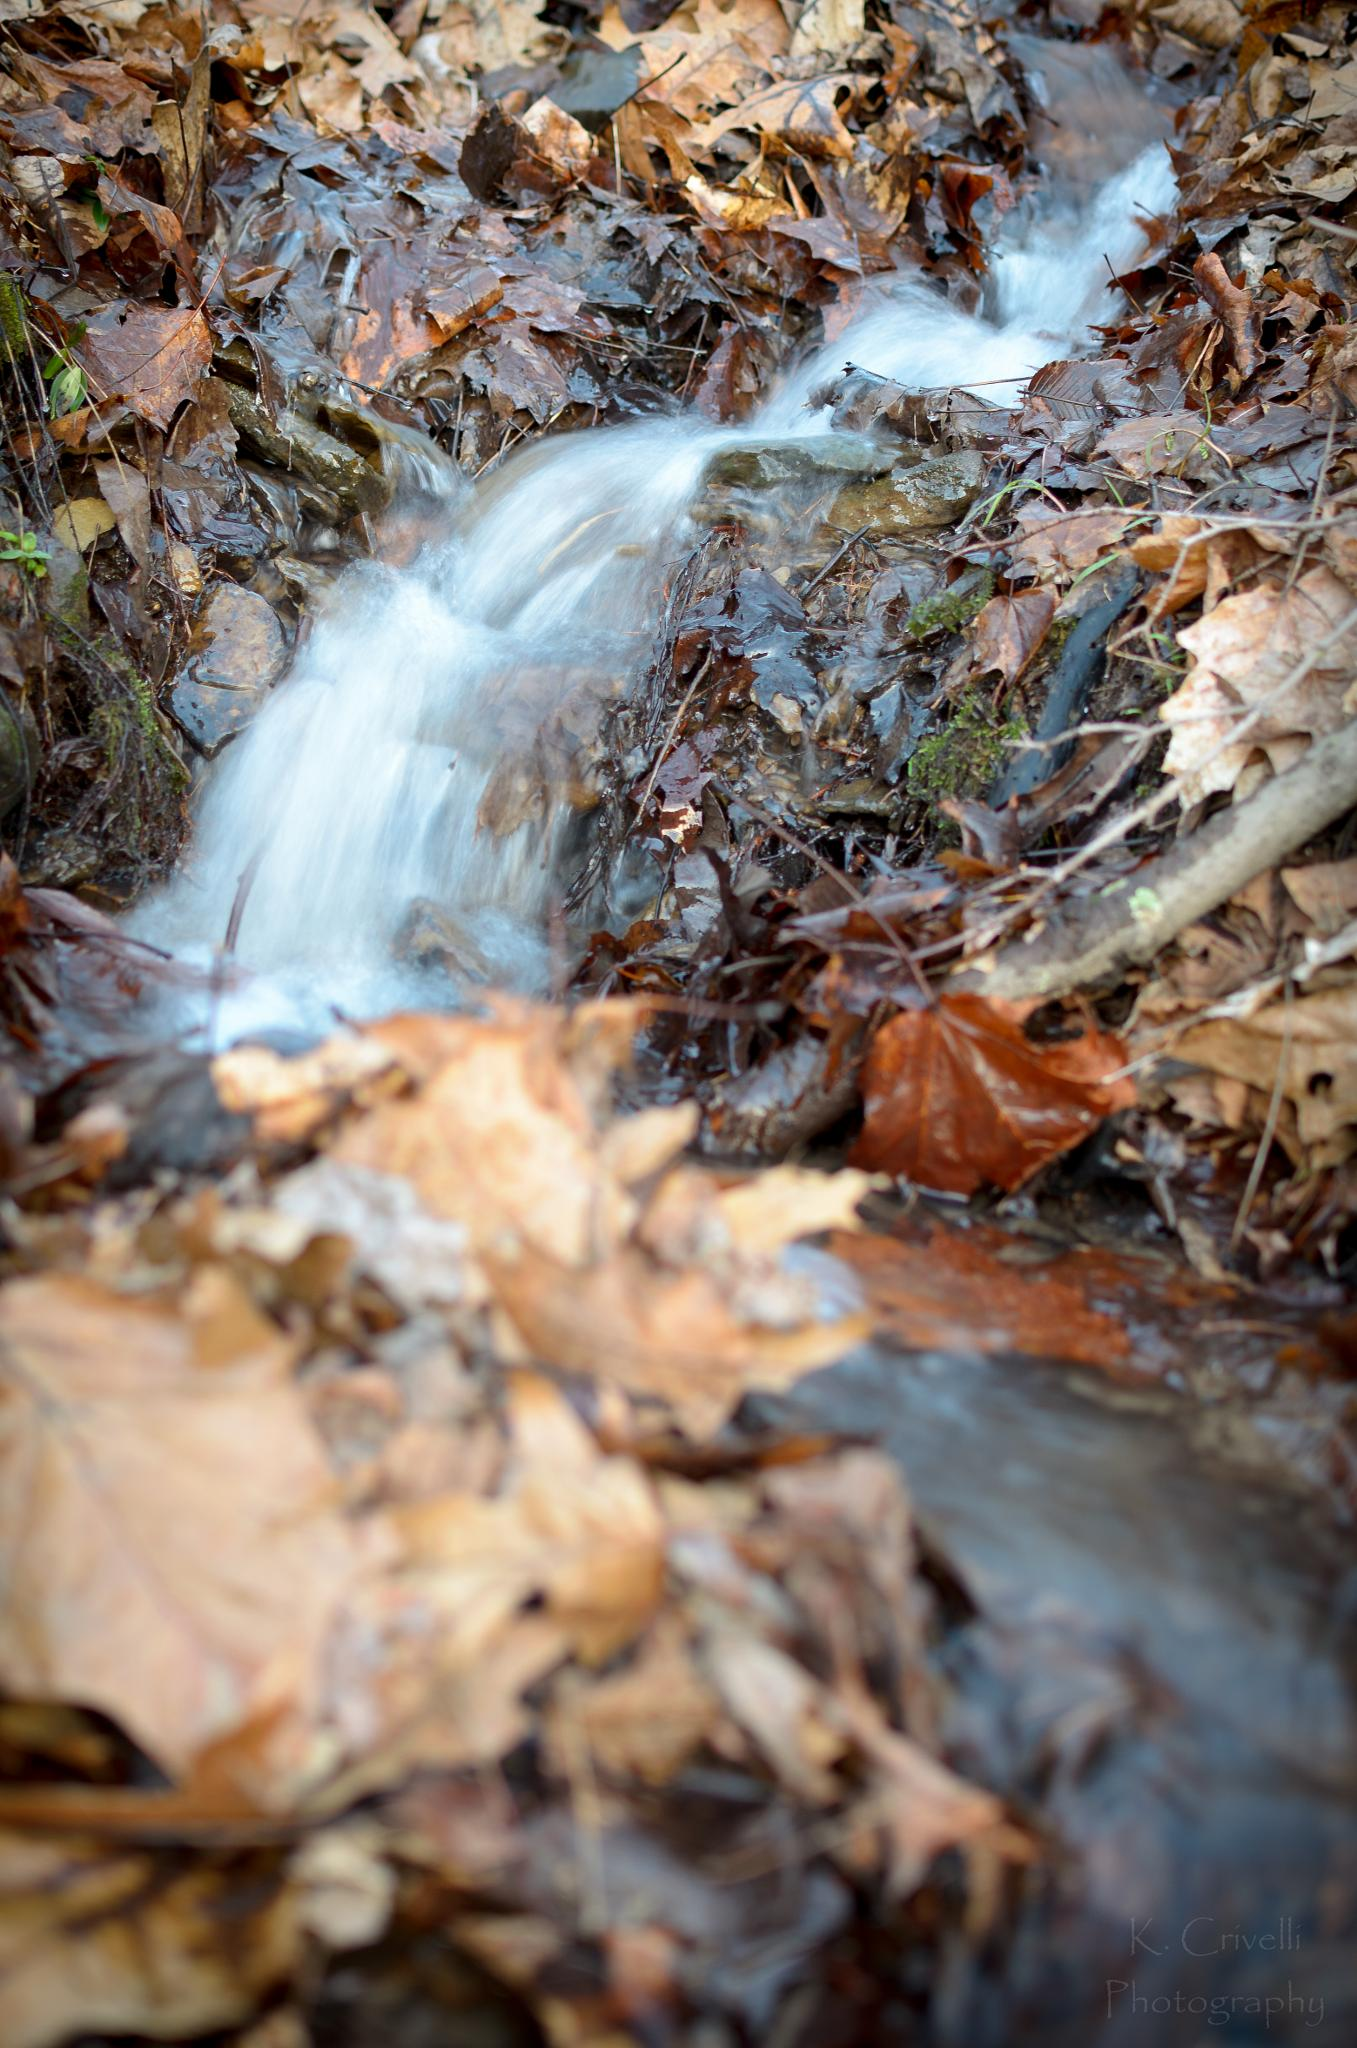 Winding Stream by Kevin Crivelli